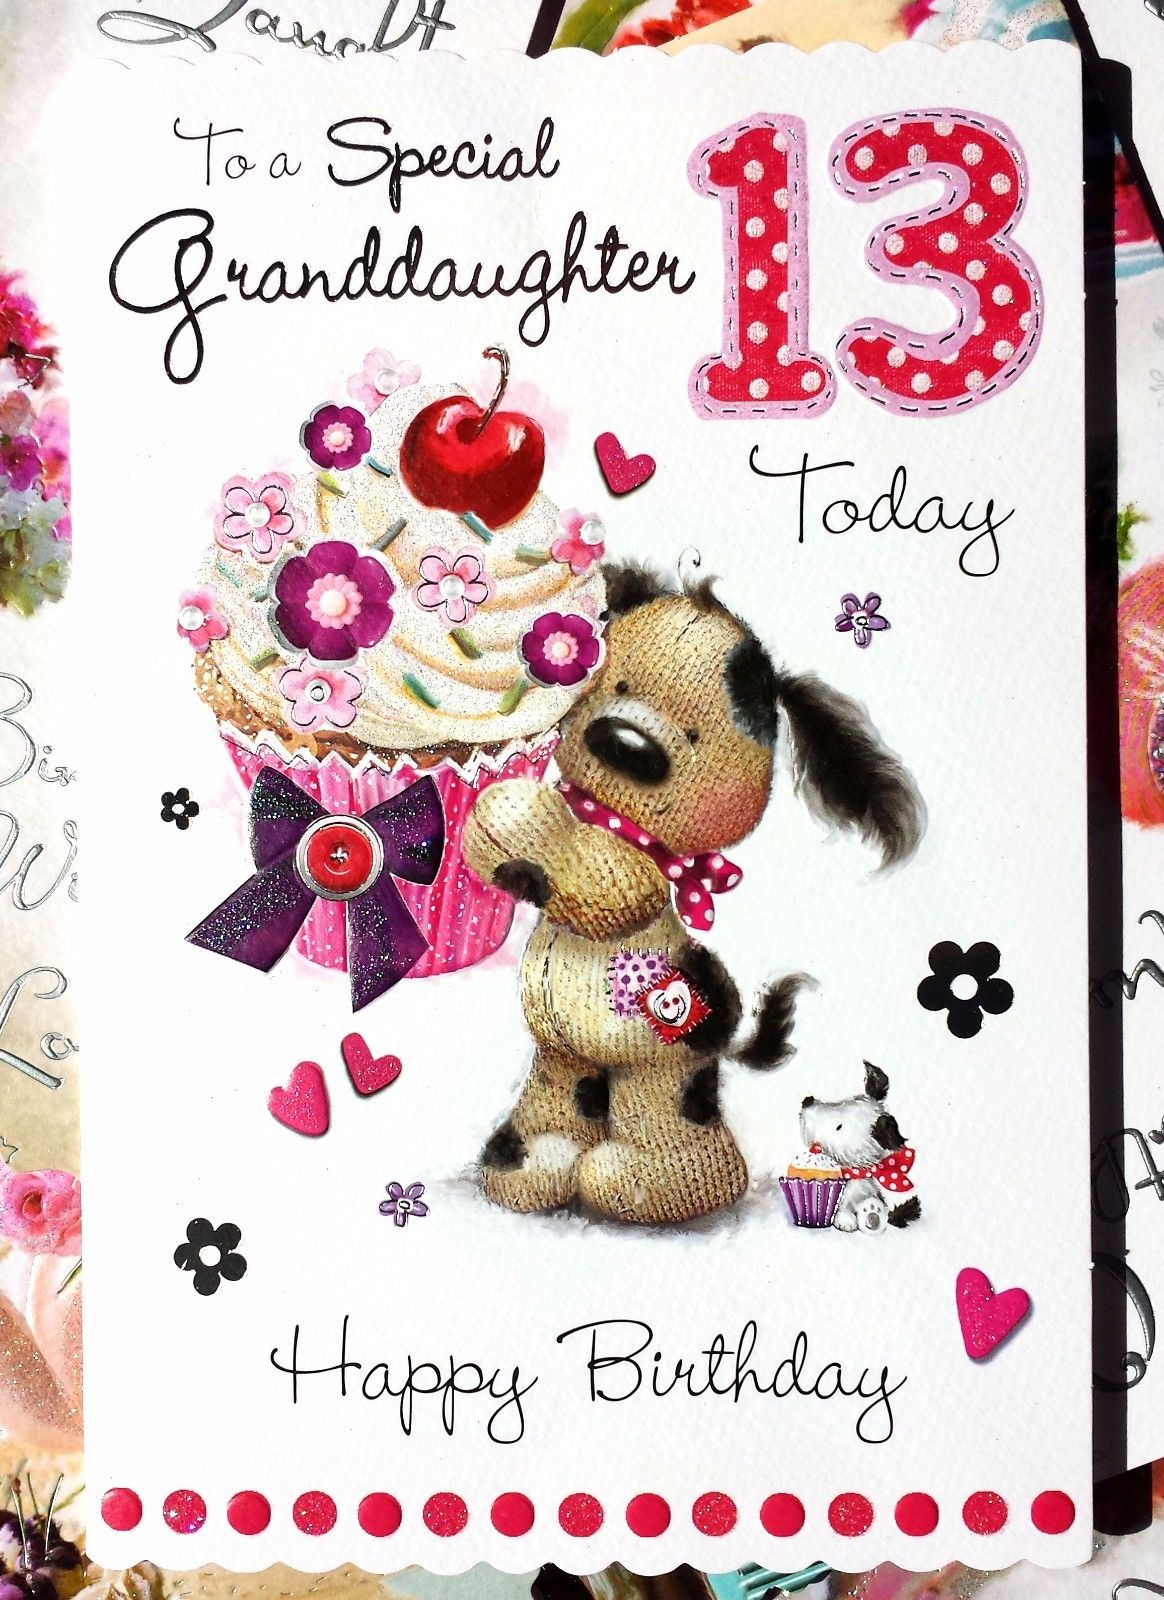 3 79 Gbp To A Special Granddaughter 13 Today Happy Birthday Cute 13th Birthday Card Happy 13th Birthday Happy Birthday Images Birthday Wishes For Daughter